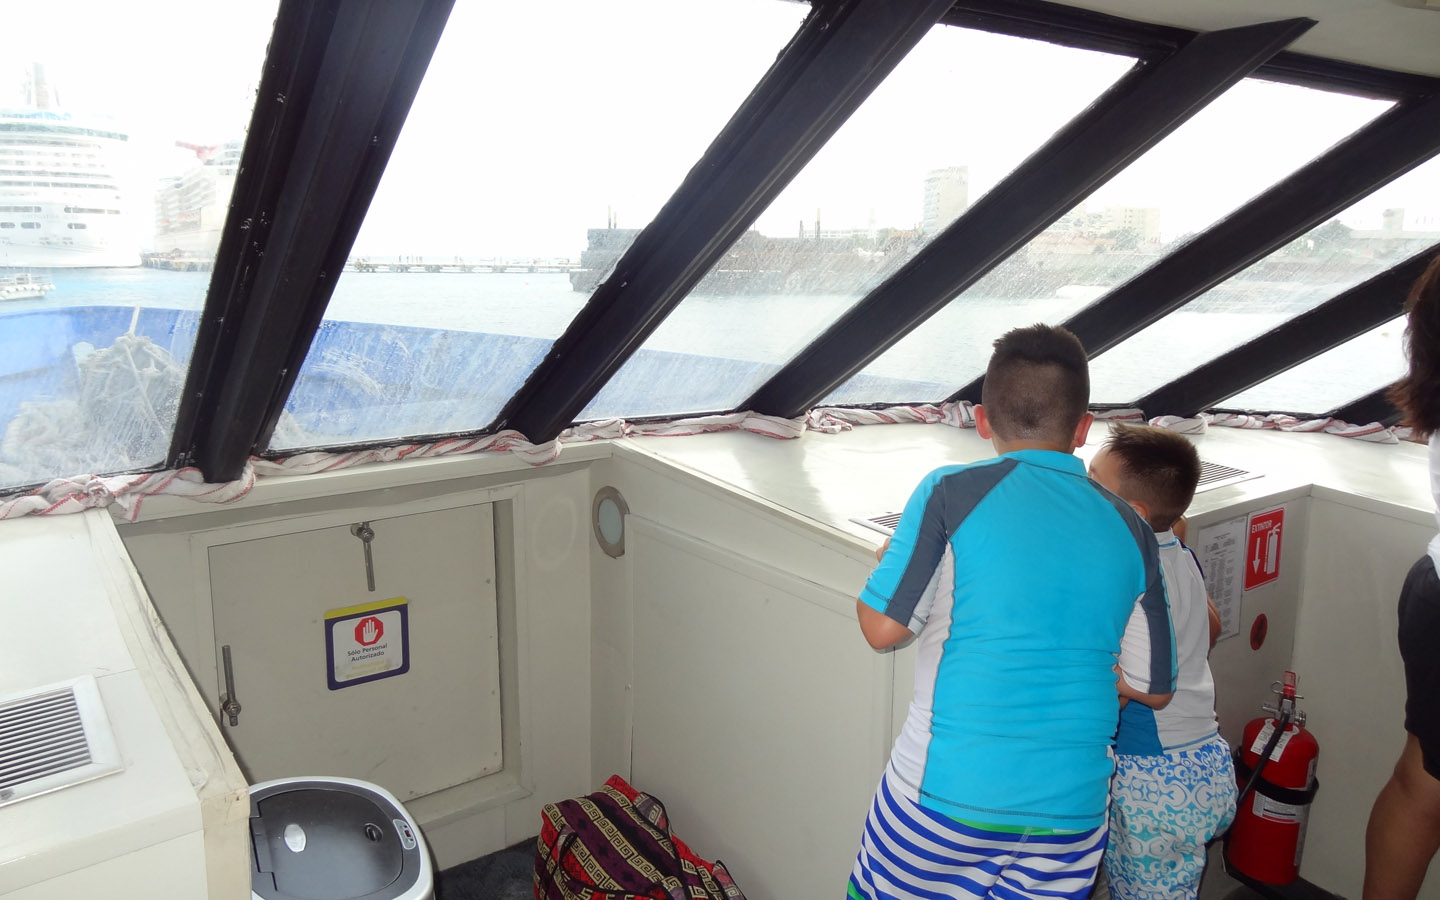 Boat Ride to Playa Del Carmen, Mexico 2014